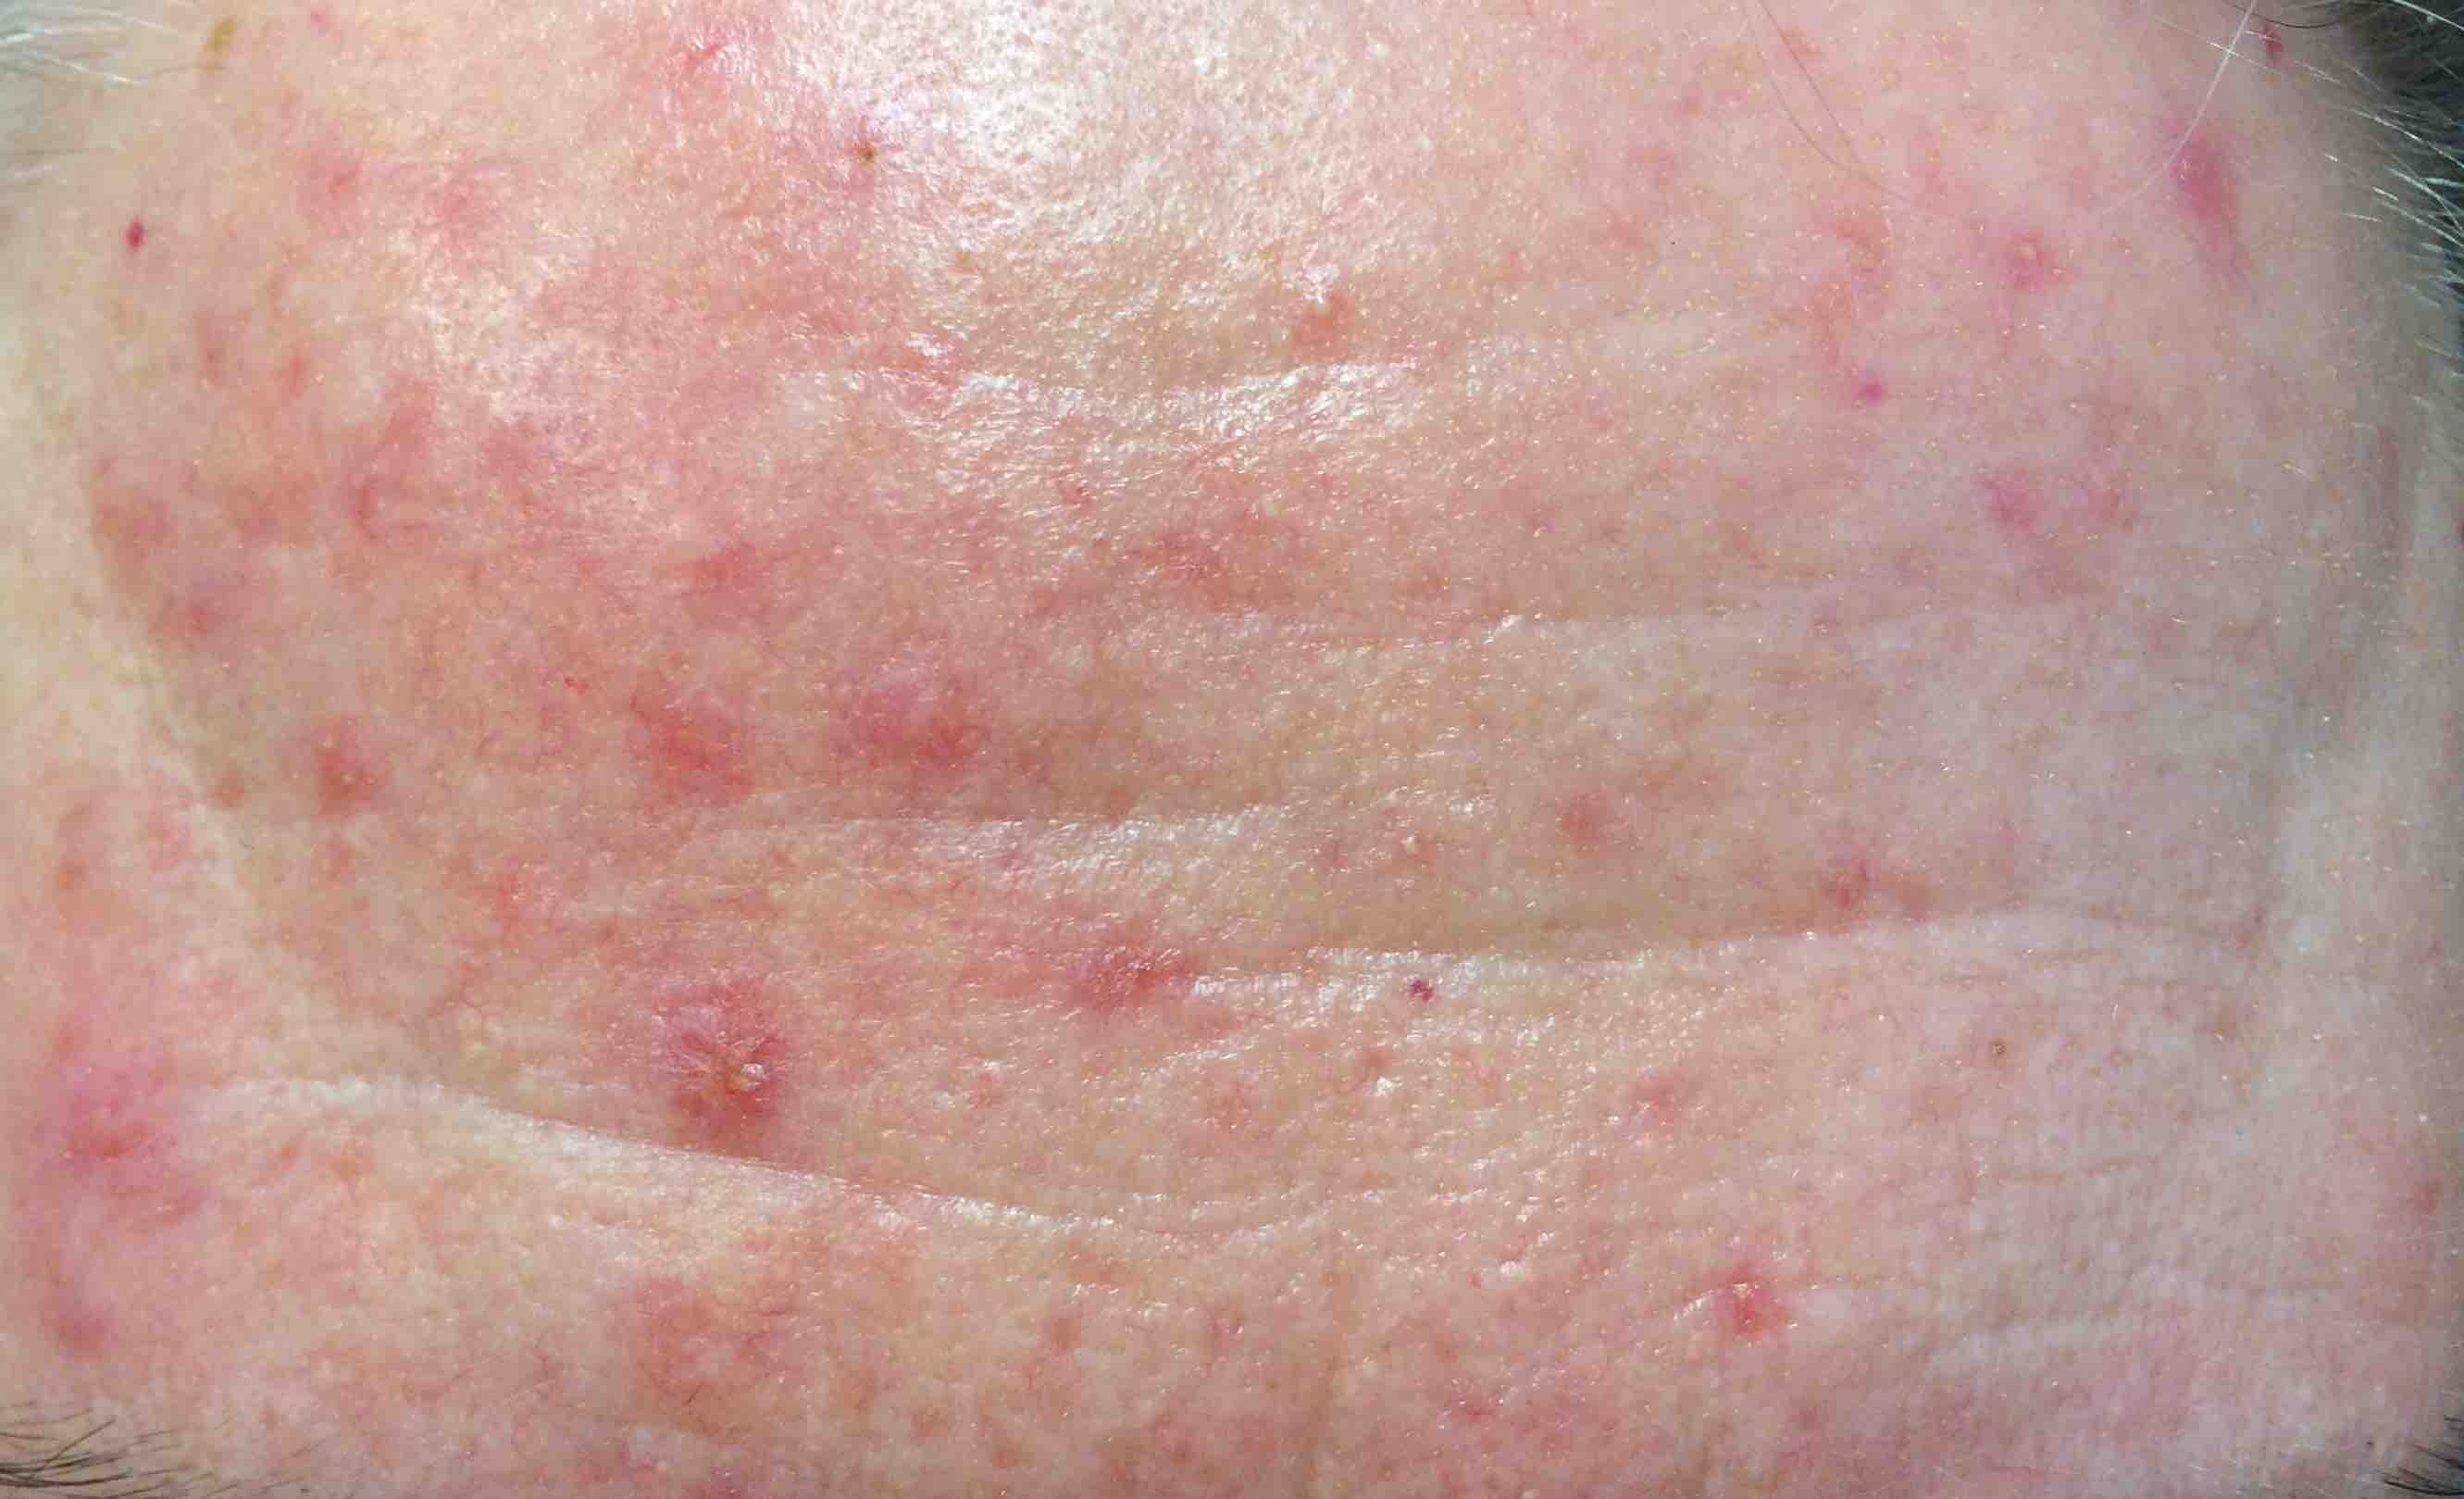 ivermectin rosacea treatment progress A